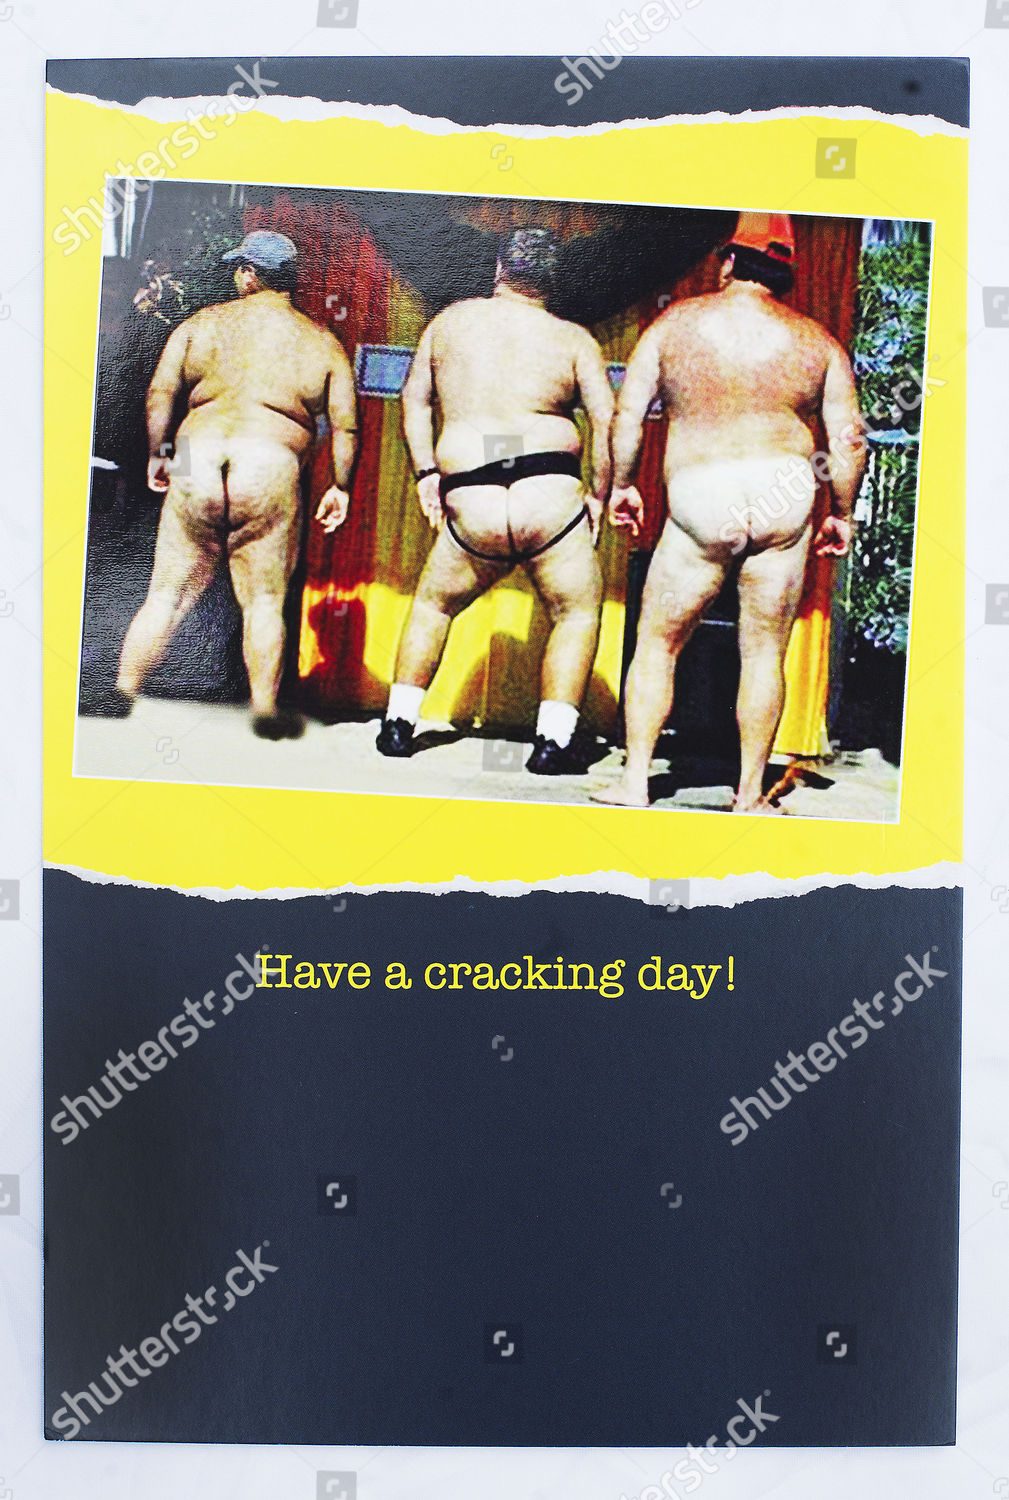 bc517c5434 Offensive Greetings Cards On Sale At A Tesco Store In Ealing. The Cards  Feature Naked